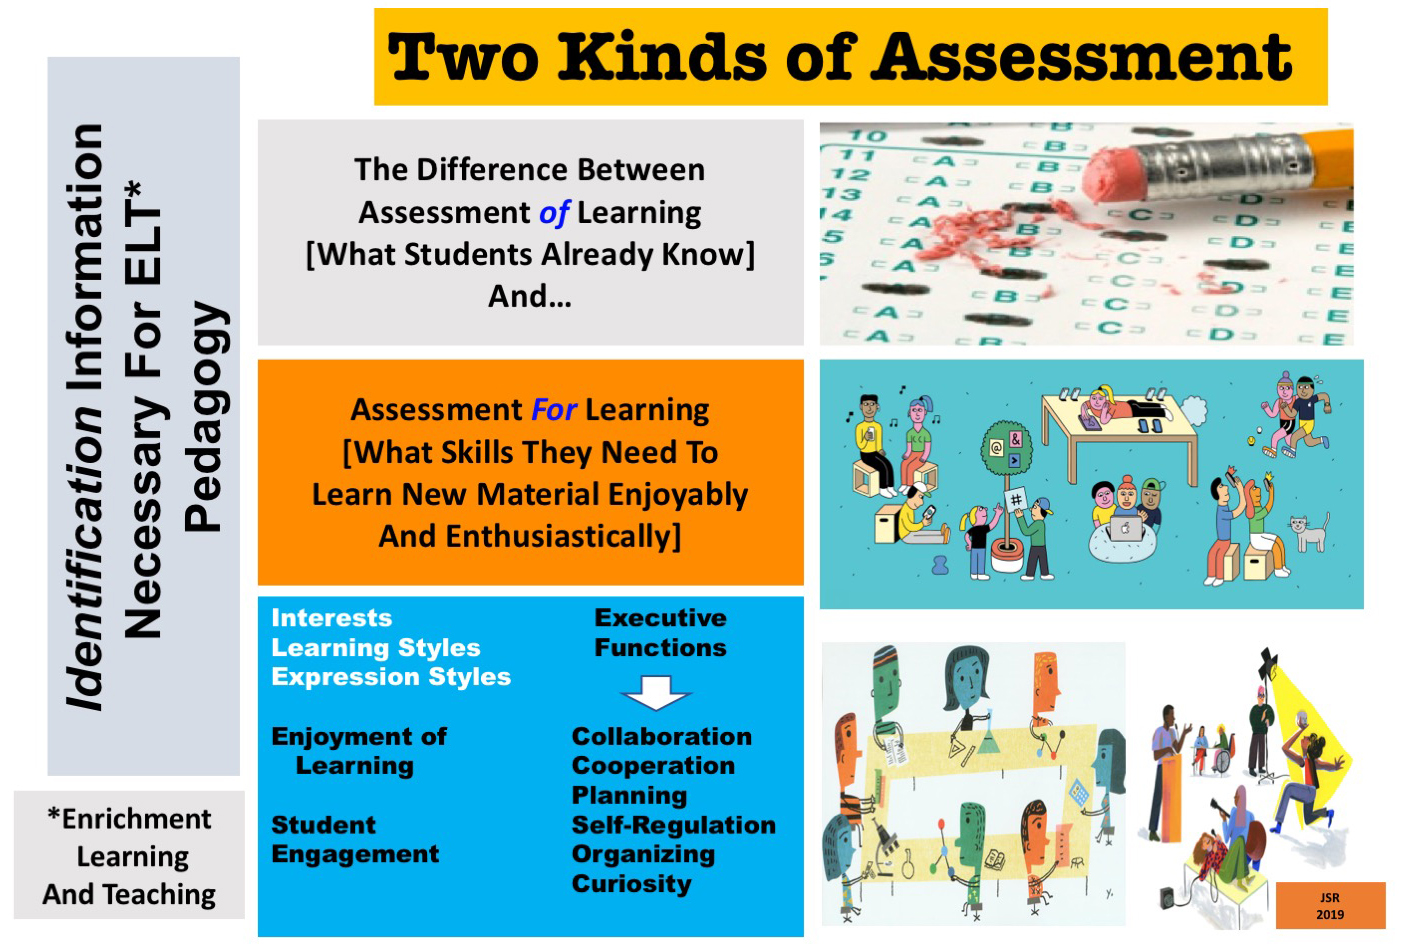 Two Kinds of Assessmnet